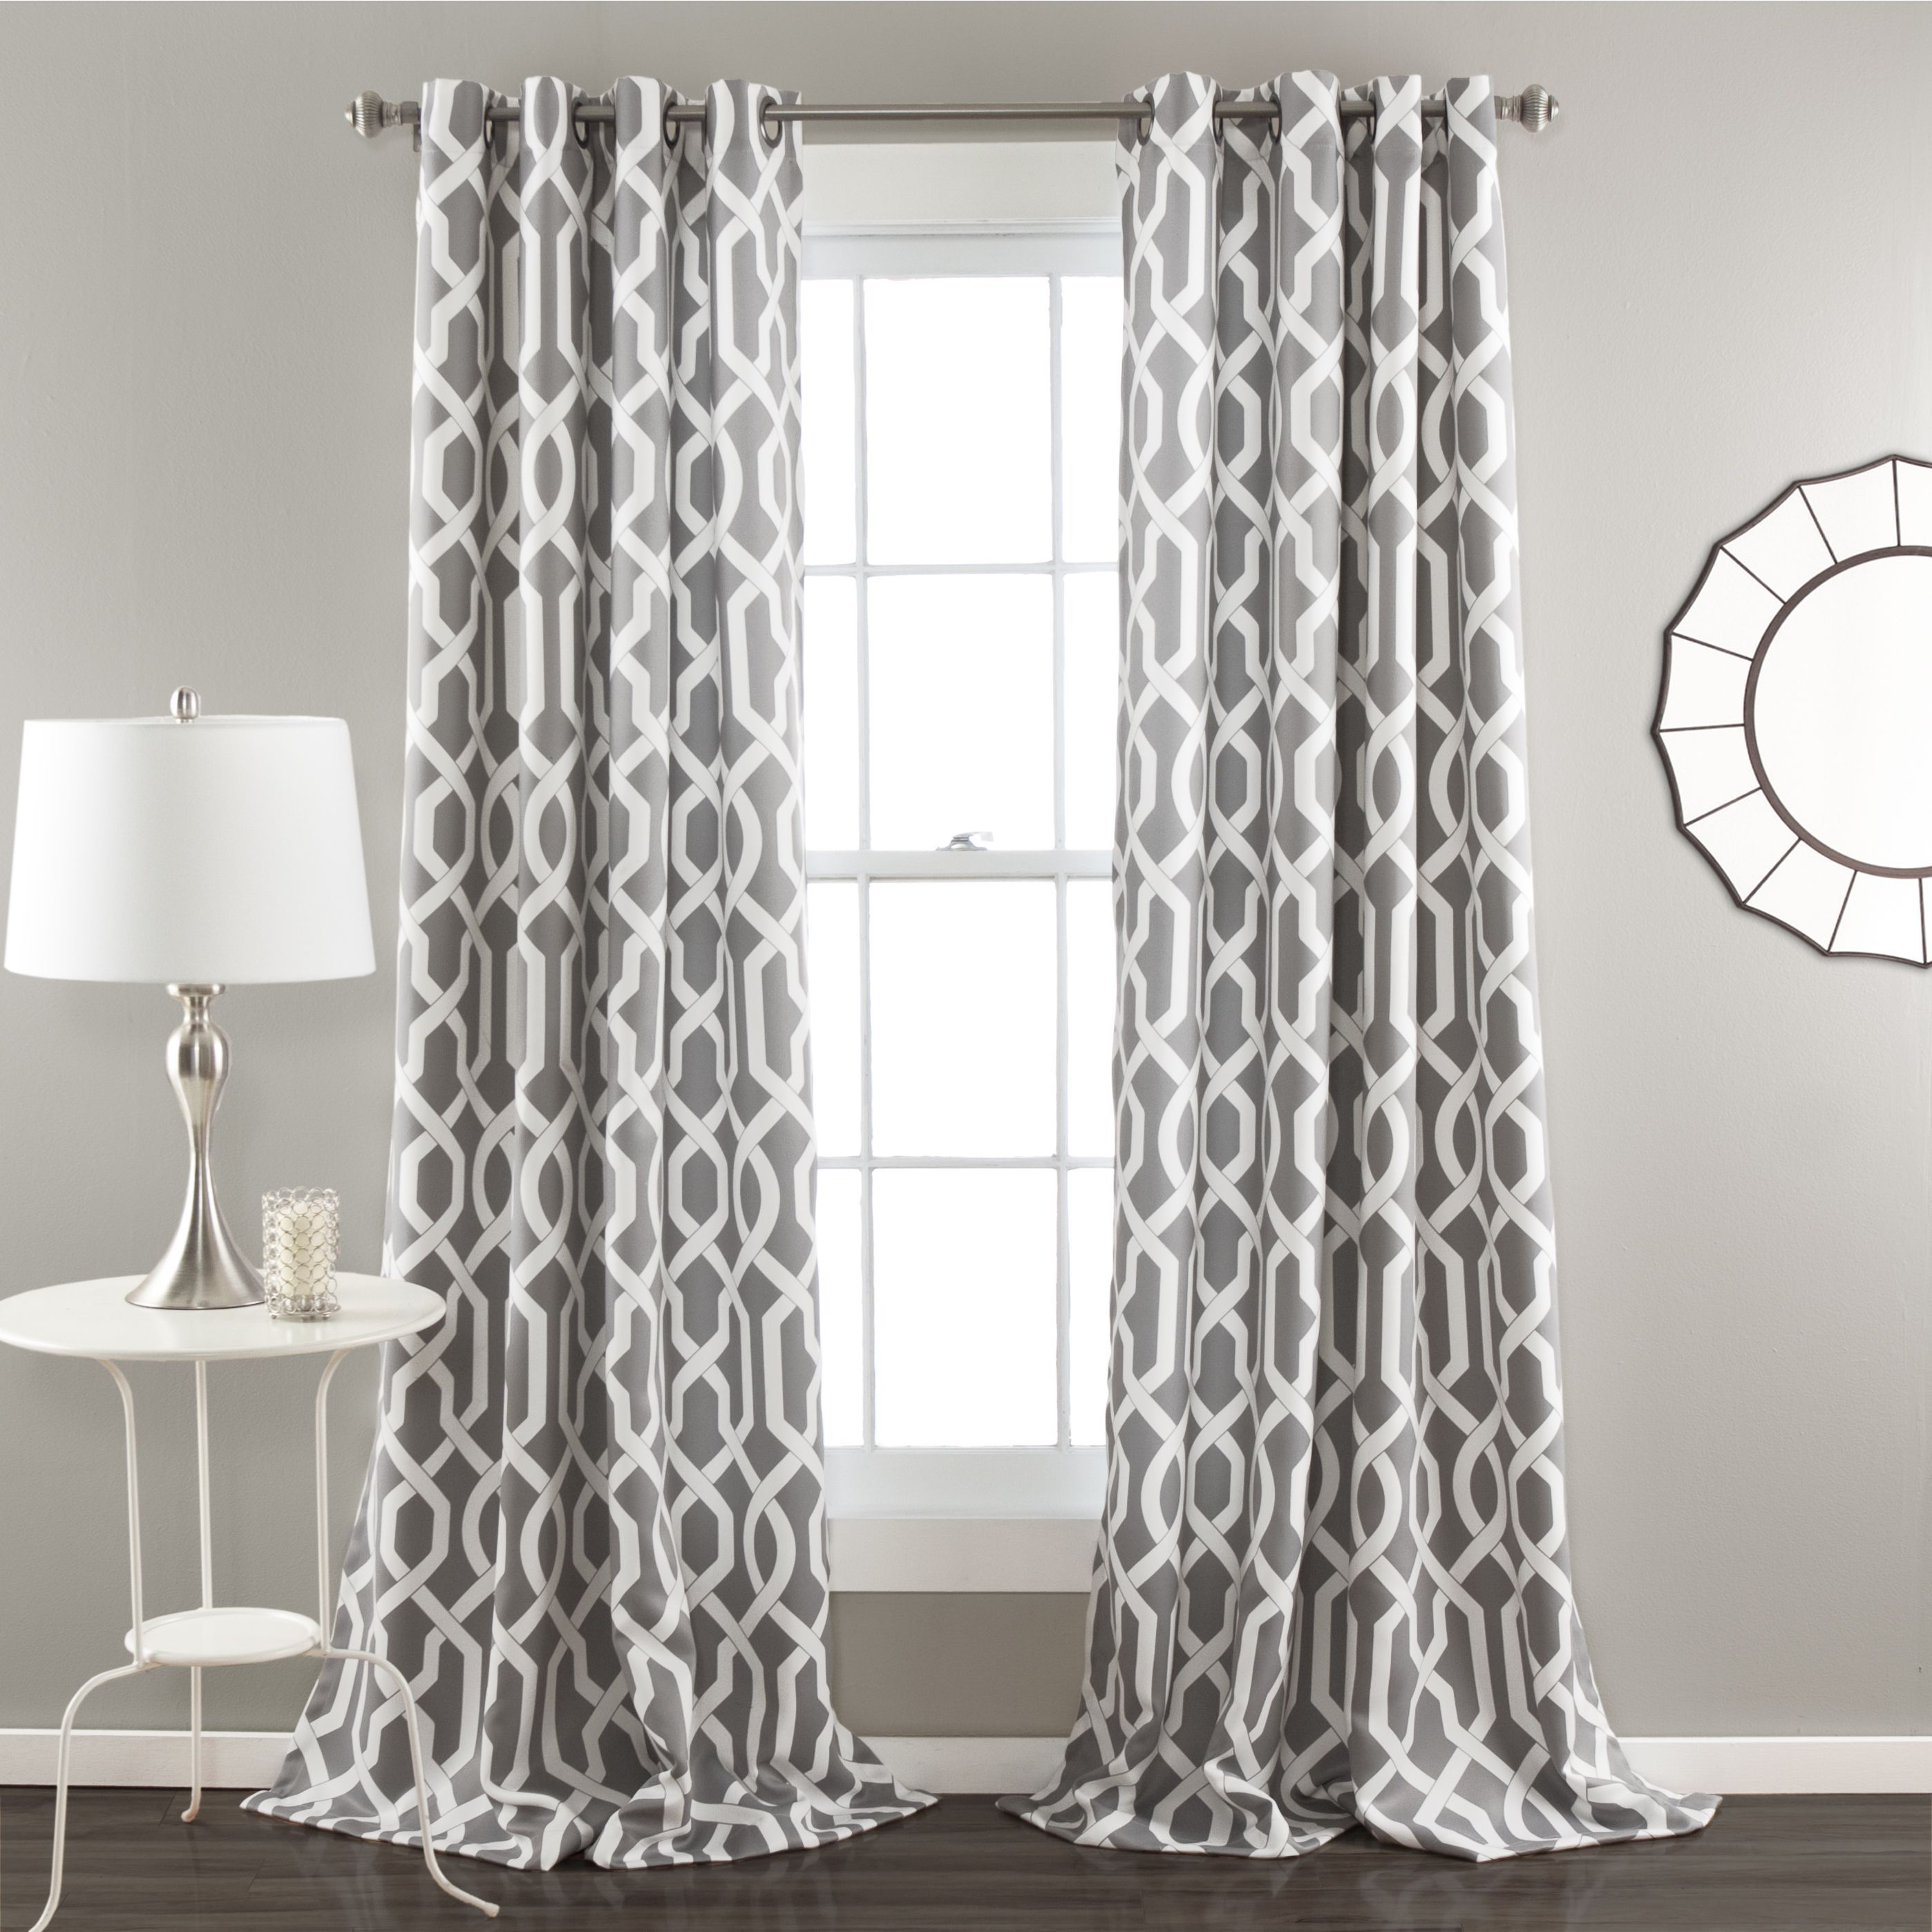 elements home polyester inch curtains garden of lattice cotton product sheer x and window burnout free shipping set overstock today